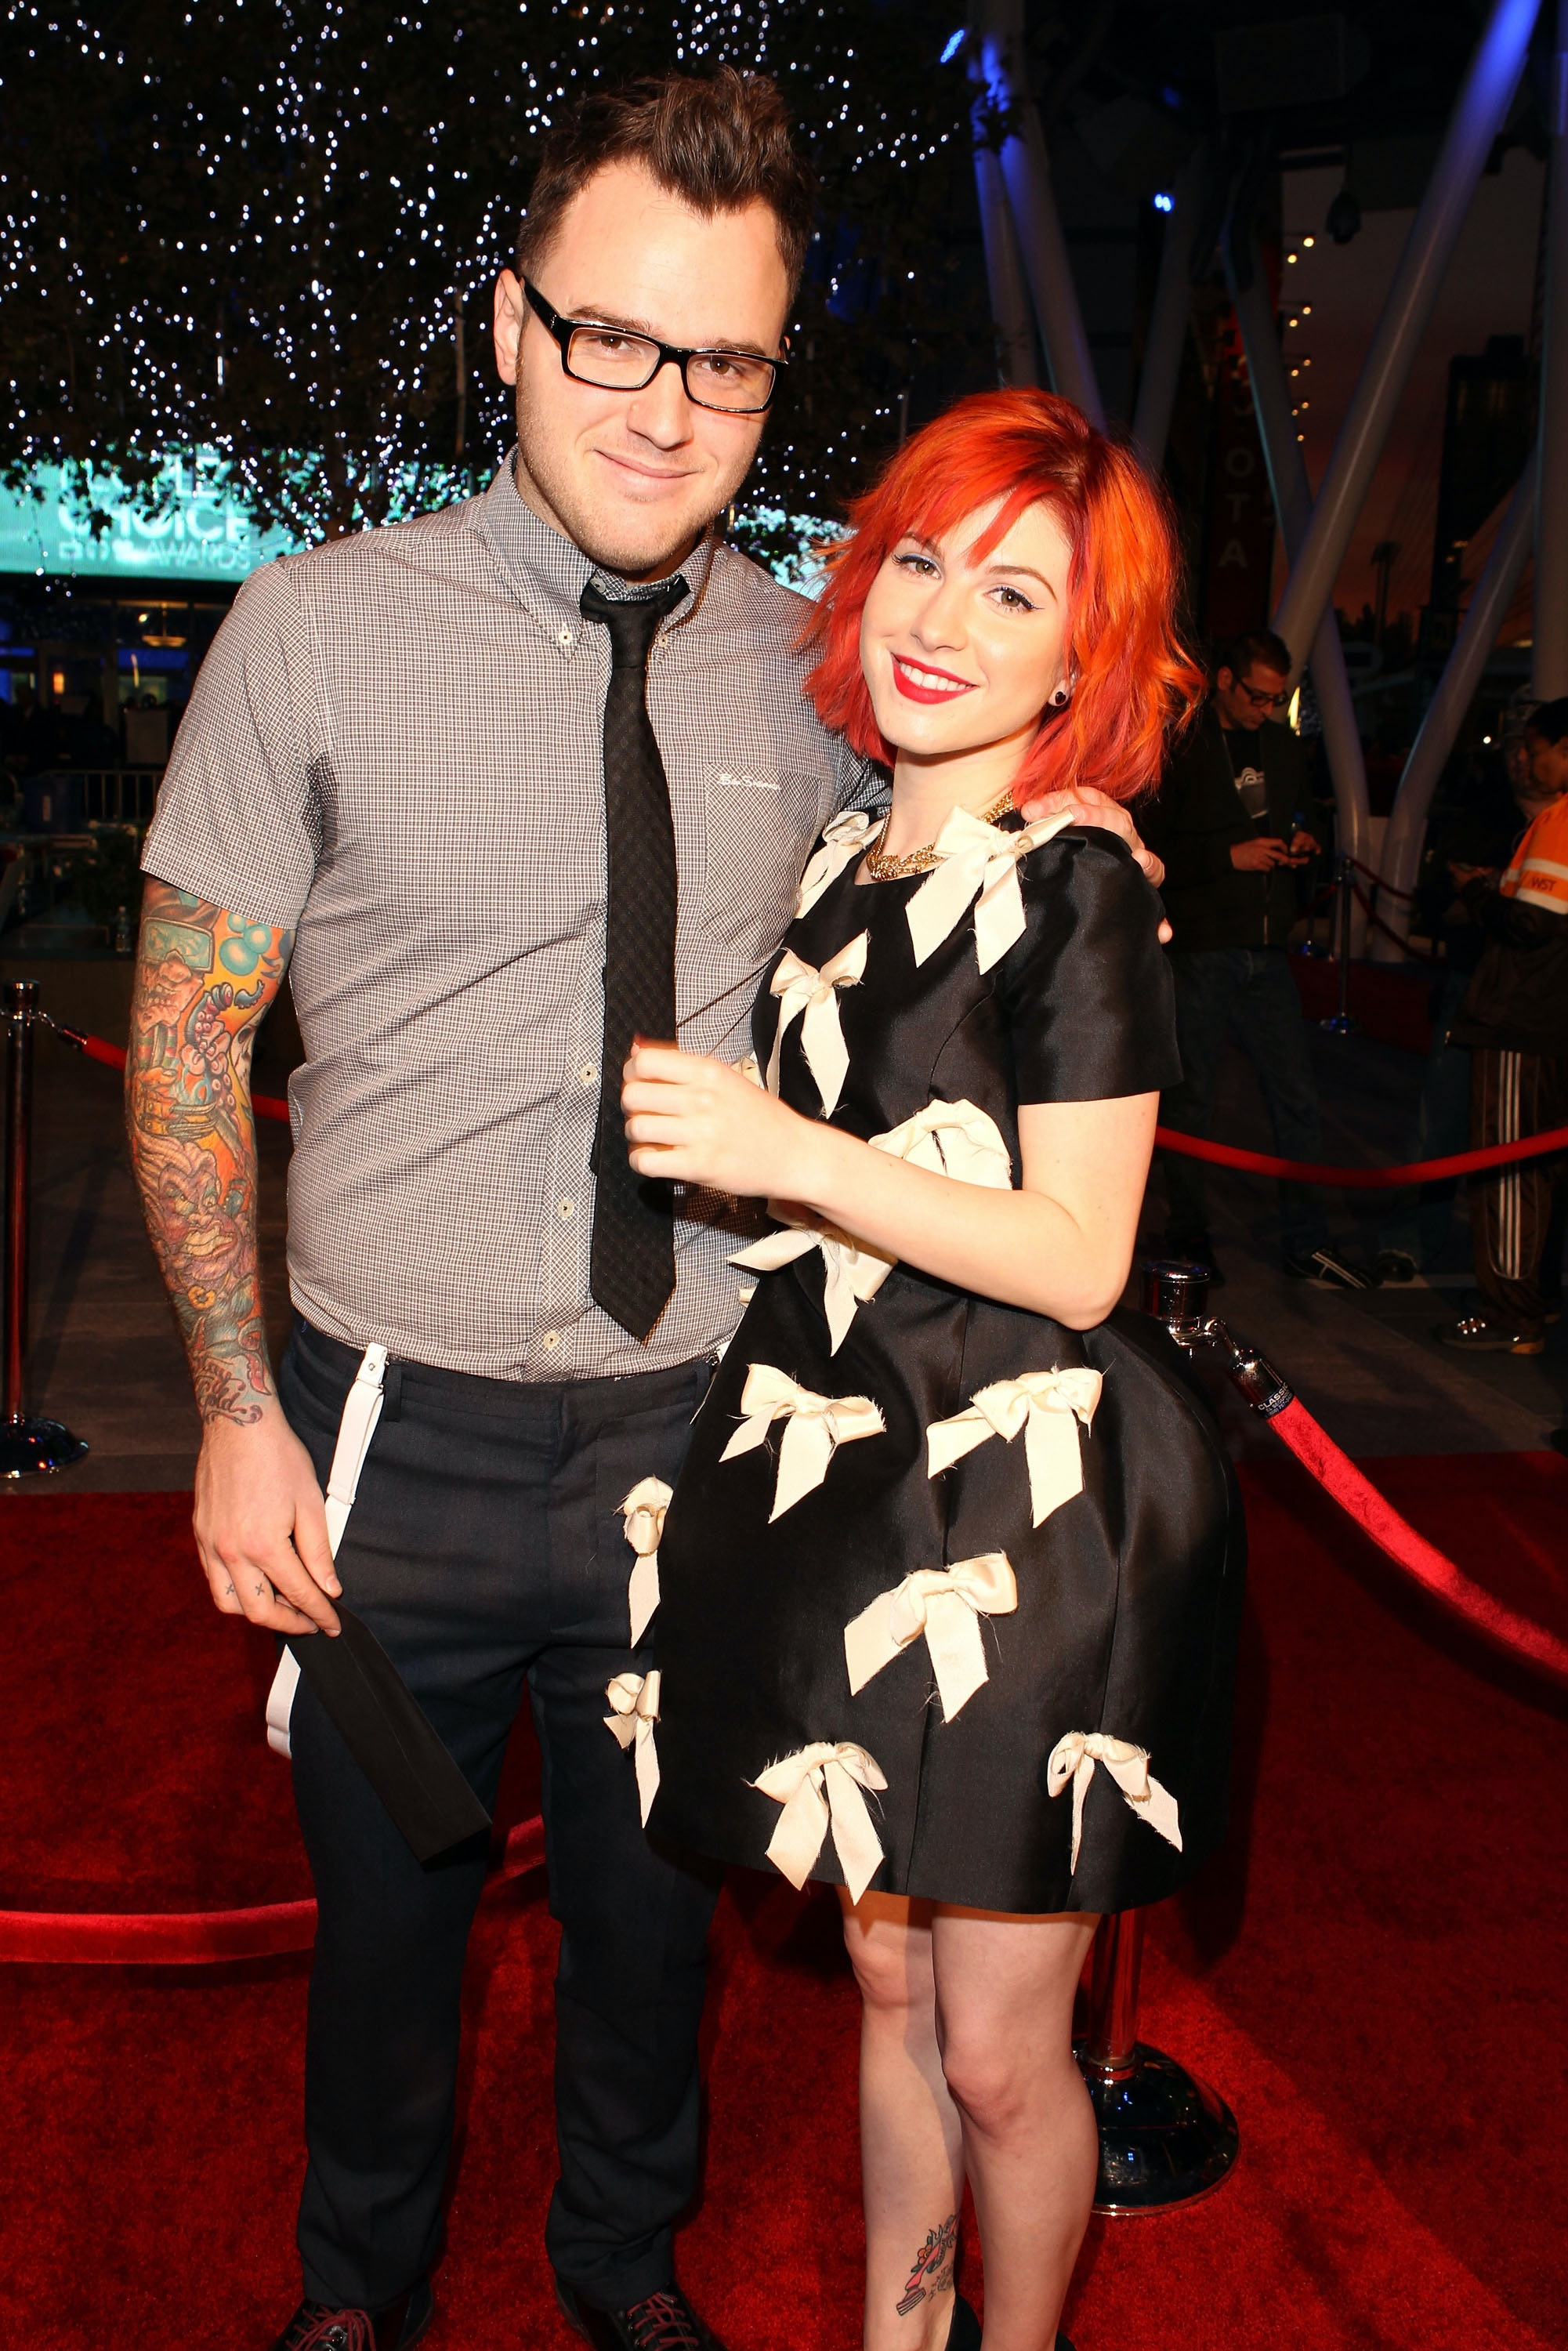 Are chad and hayley still dating after a year